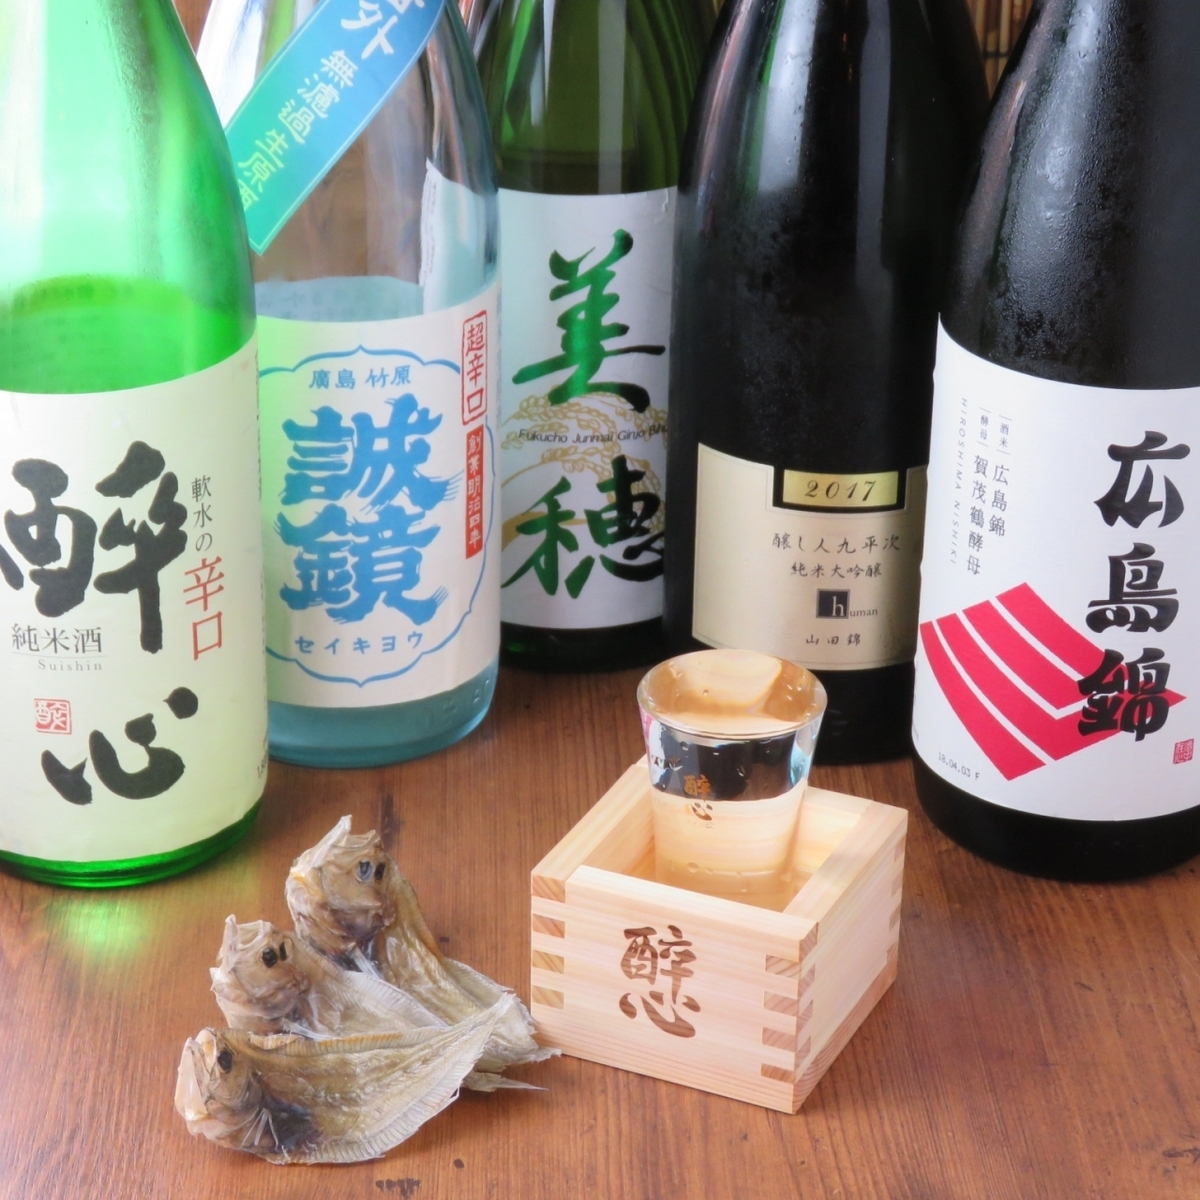 Local sake in Hiroshima is also enriched!